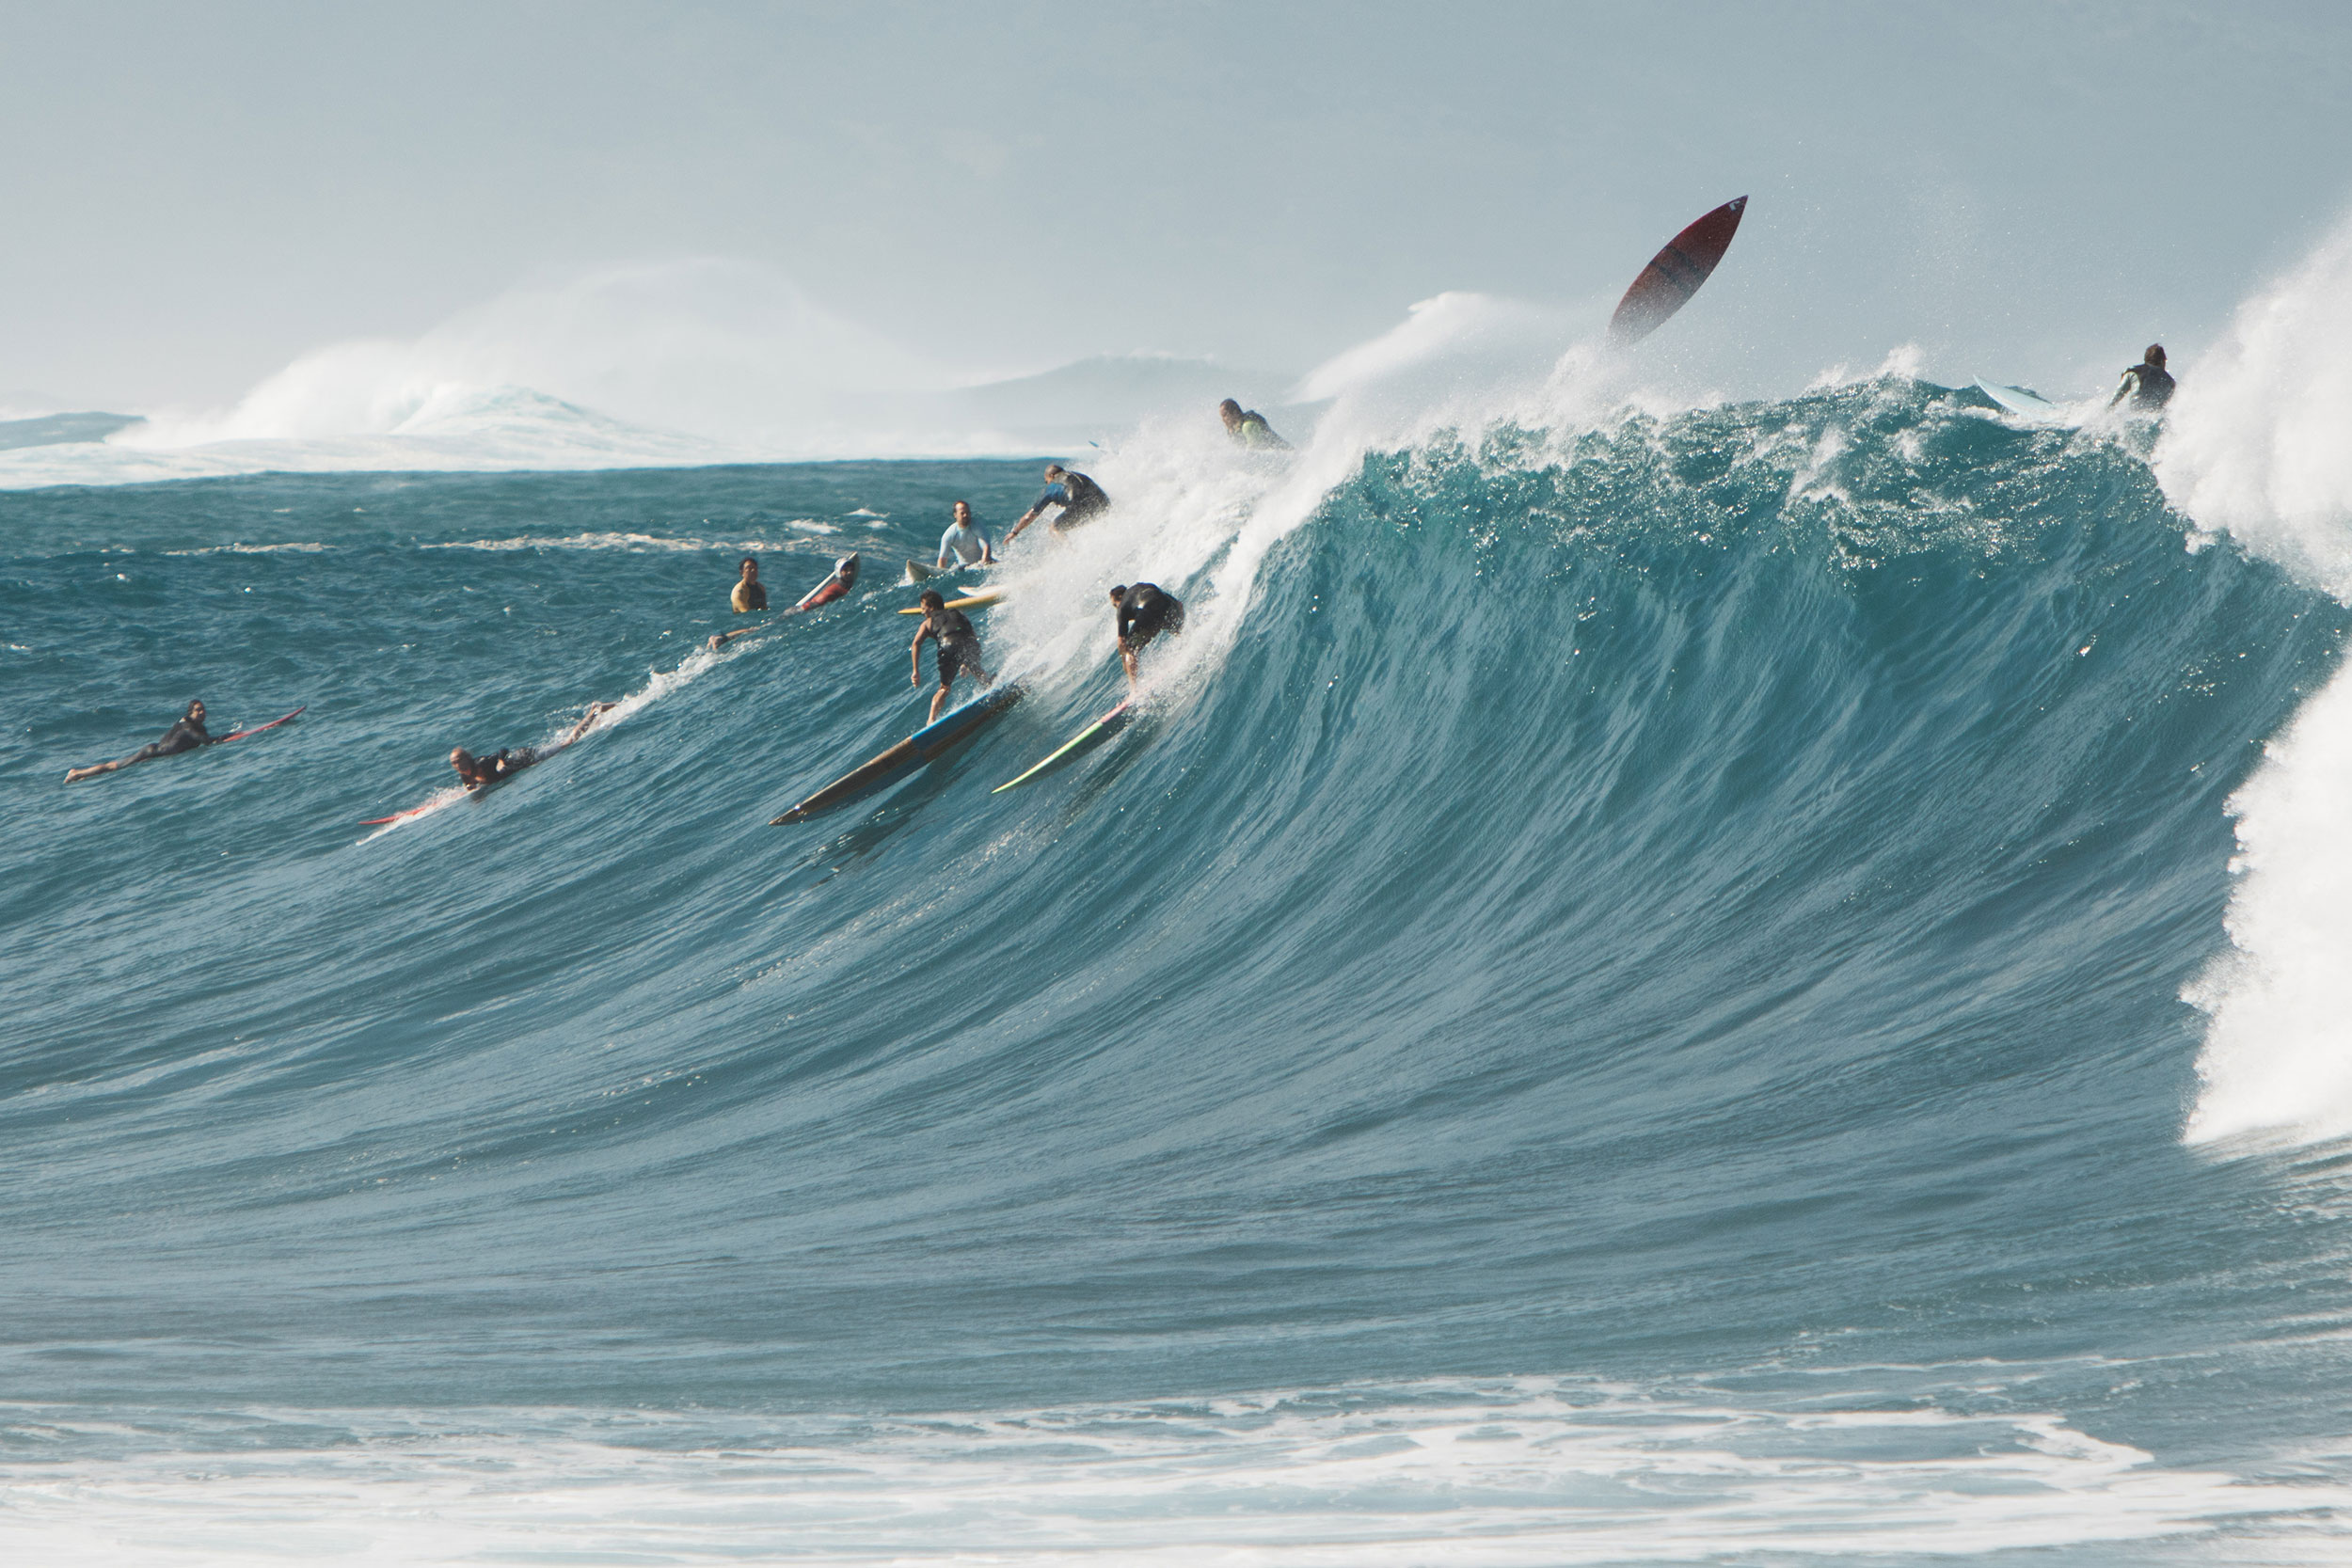 Big wave riders